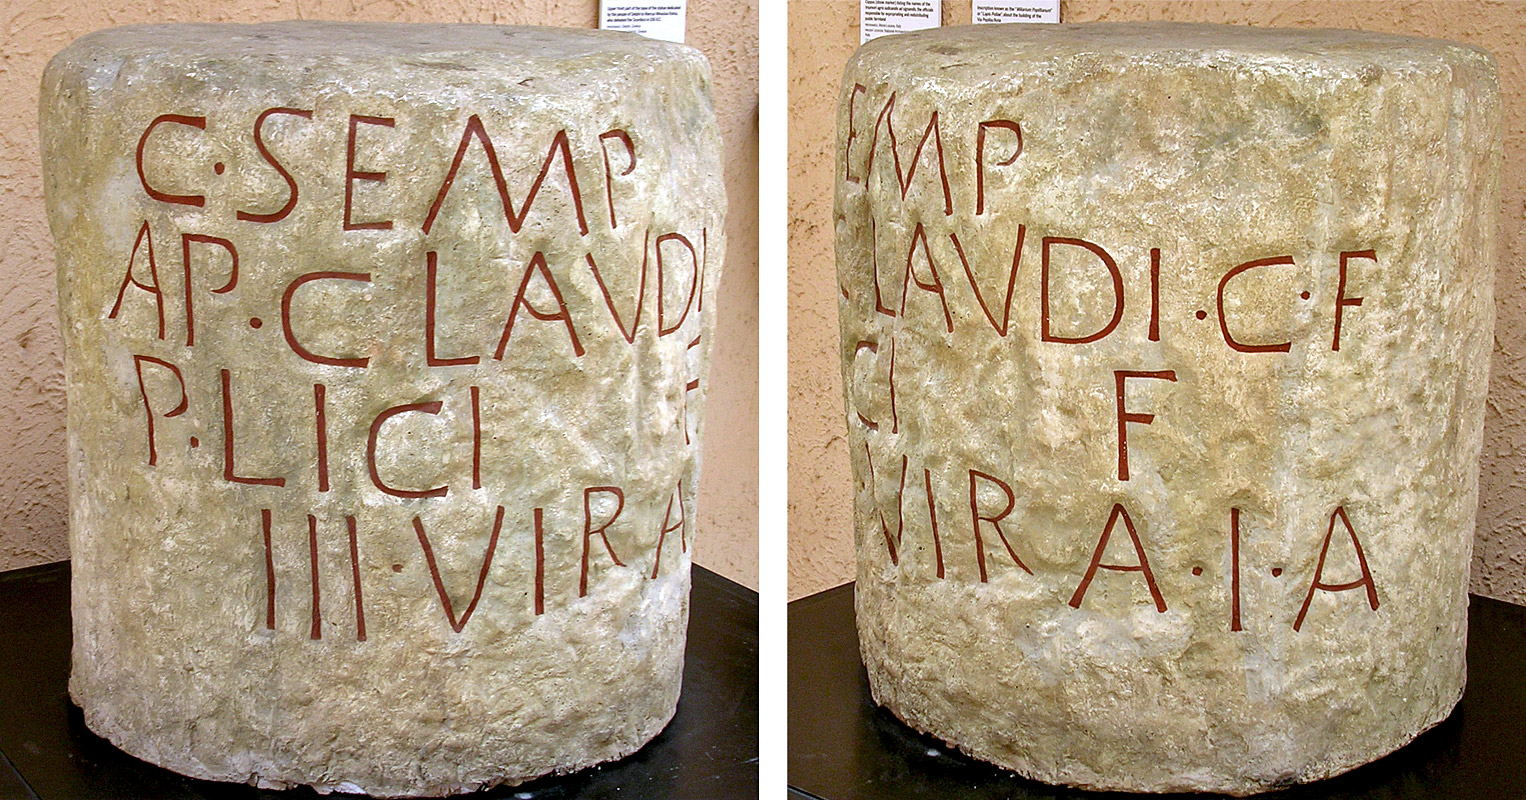 Cippus (stone marker) listing the names of the triumviri agris iudicandis adsignandis, the officials responsible for expropriating and redistributing public farmland 131 BCE. Copy. CIL I2 639 = ILLRP 470. Inv. No. MCR 145. Rome, Museum of Roman Civilization